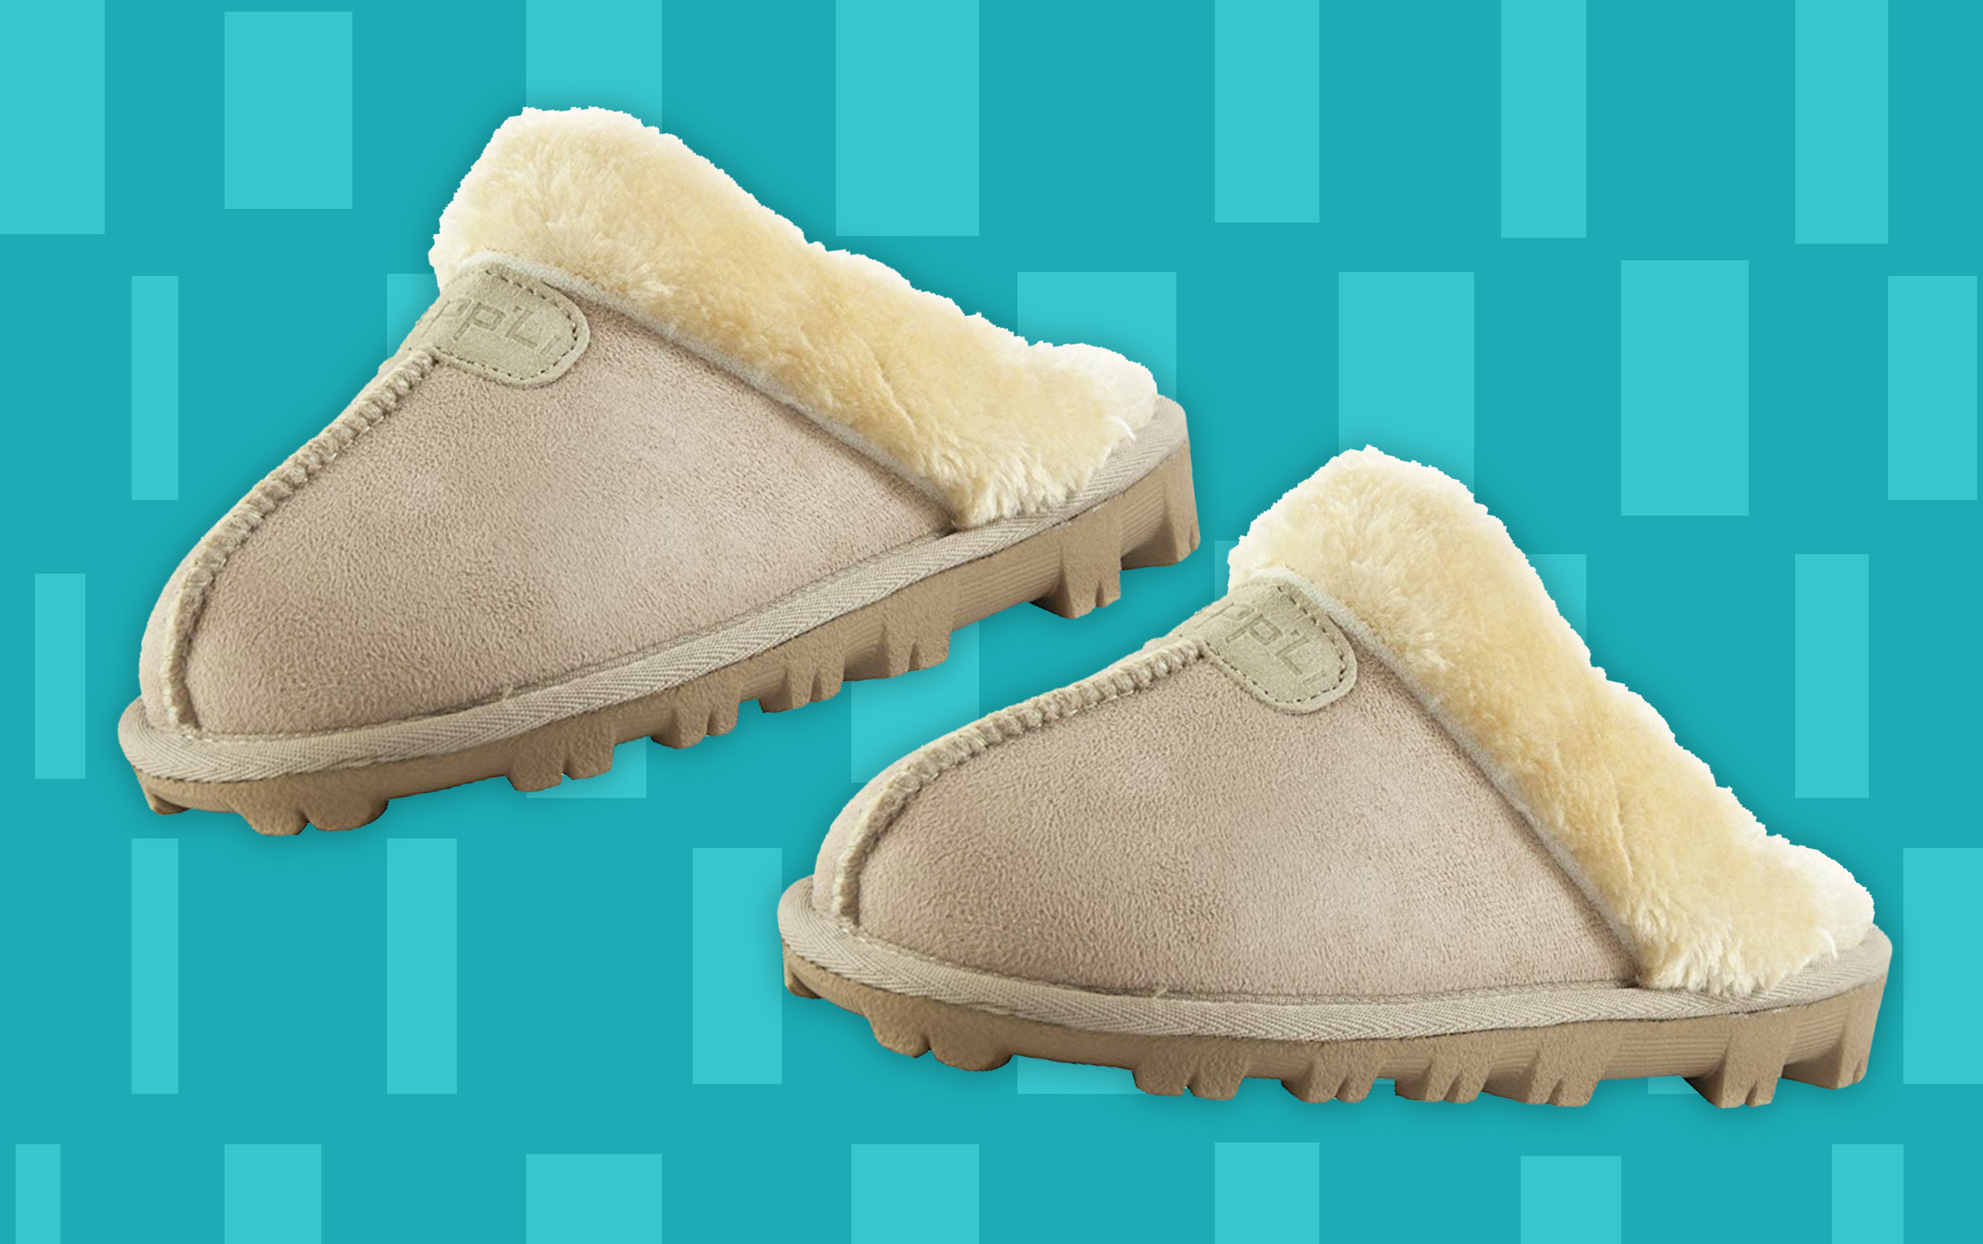 Amazon cozy mule slippers in light beige on a colored background